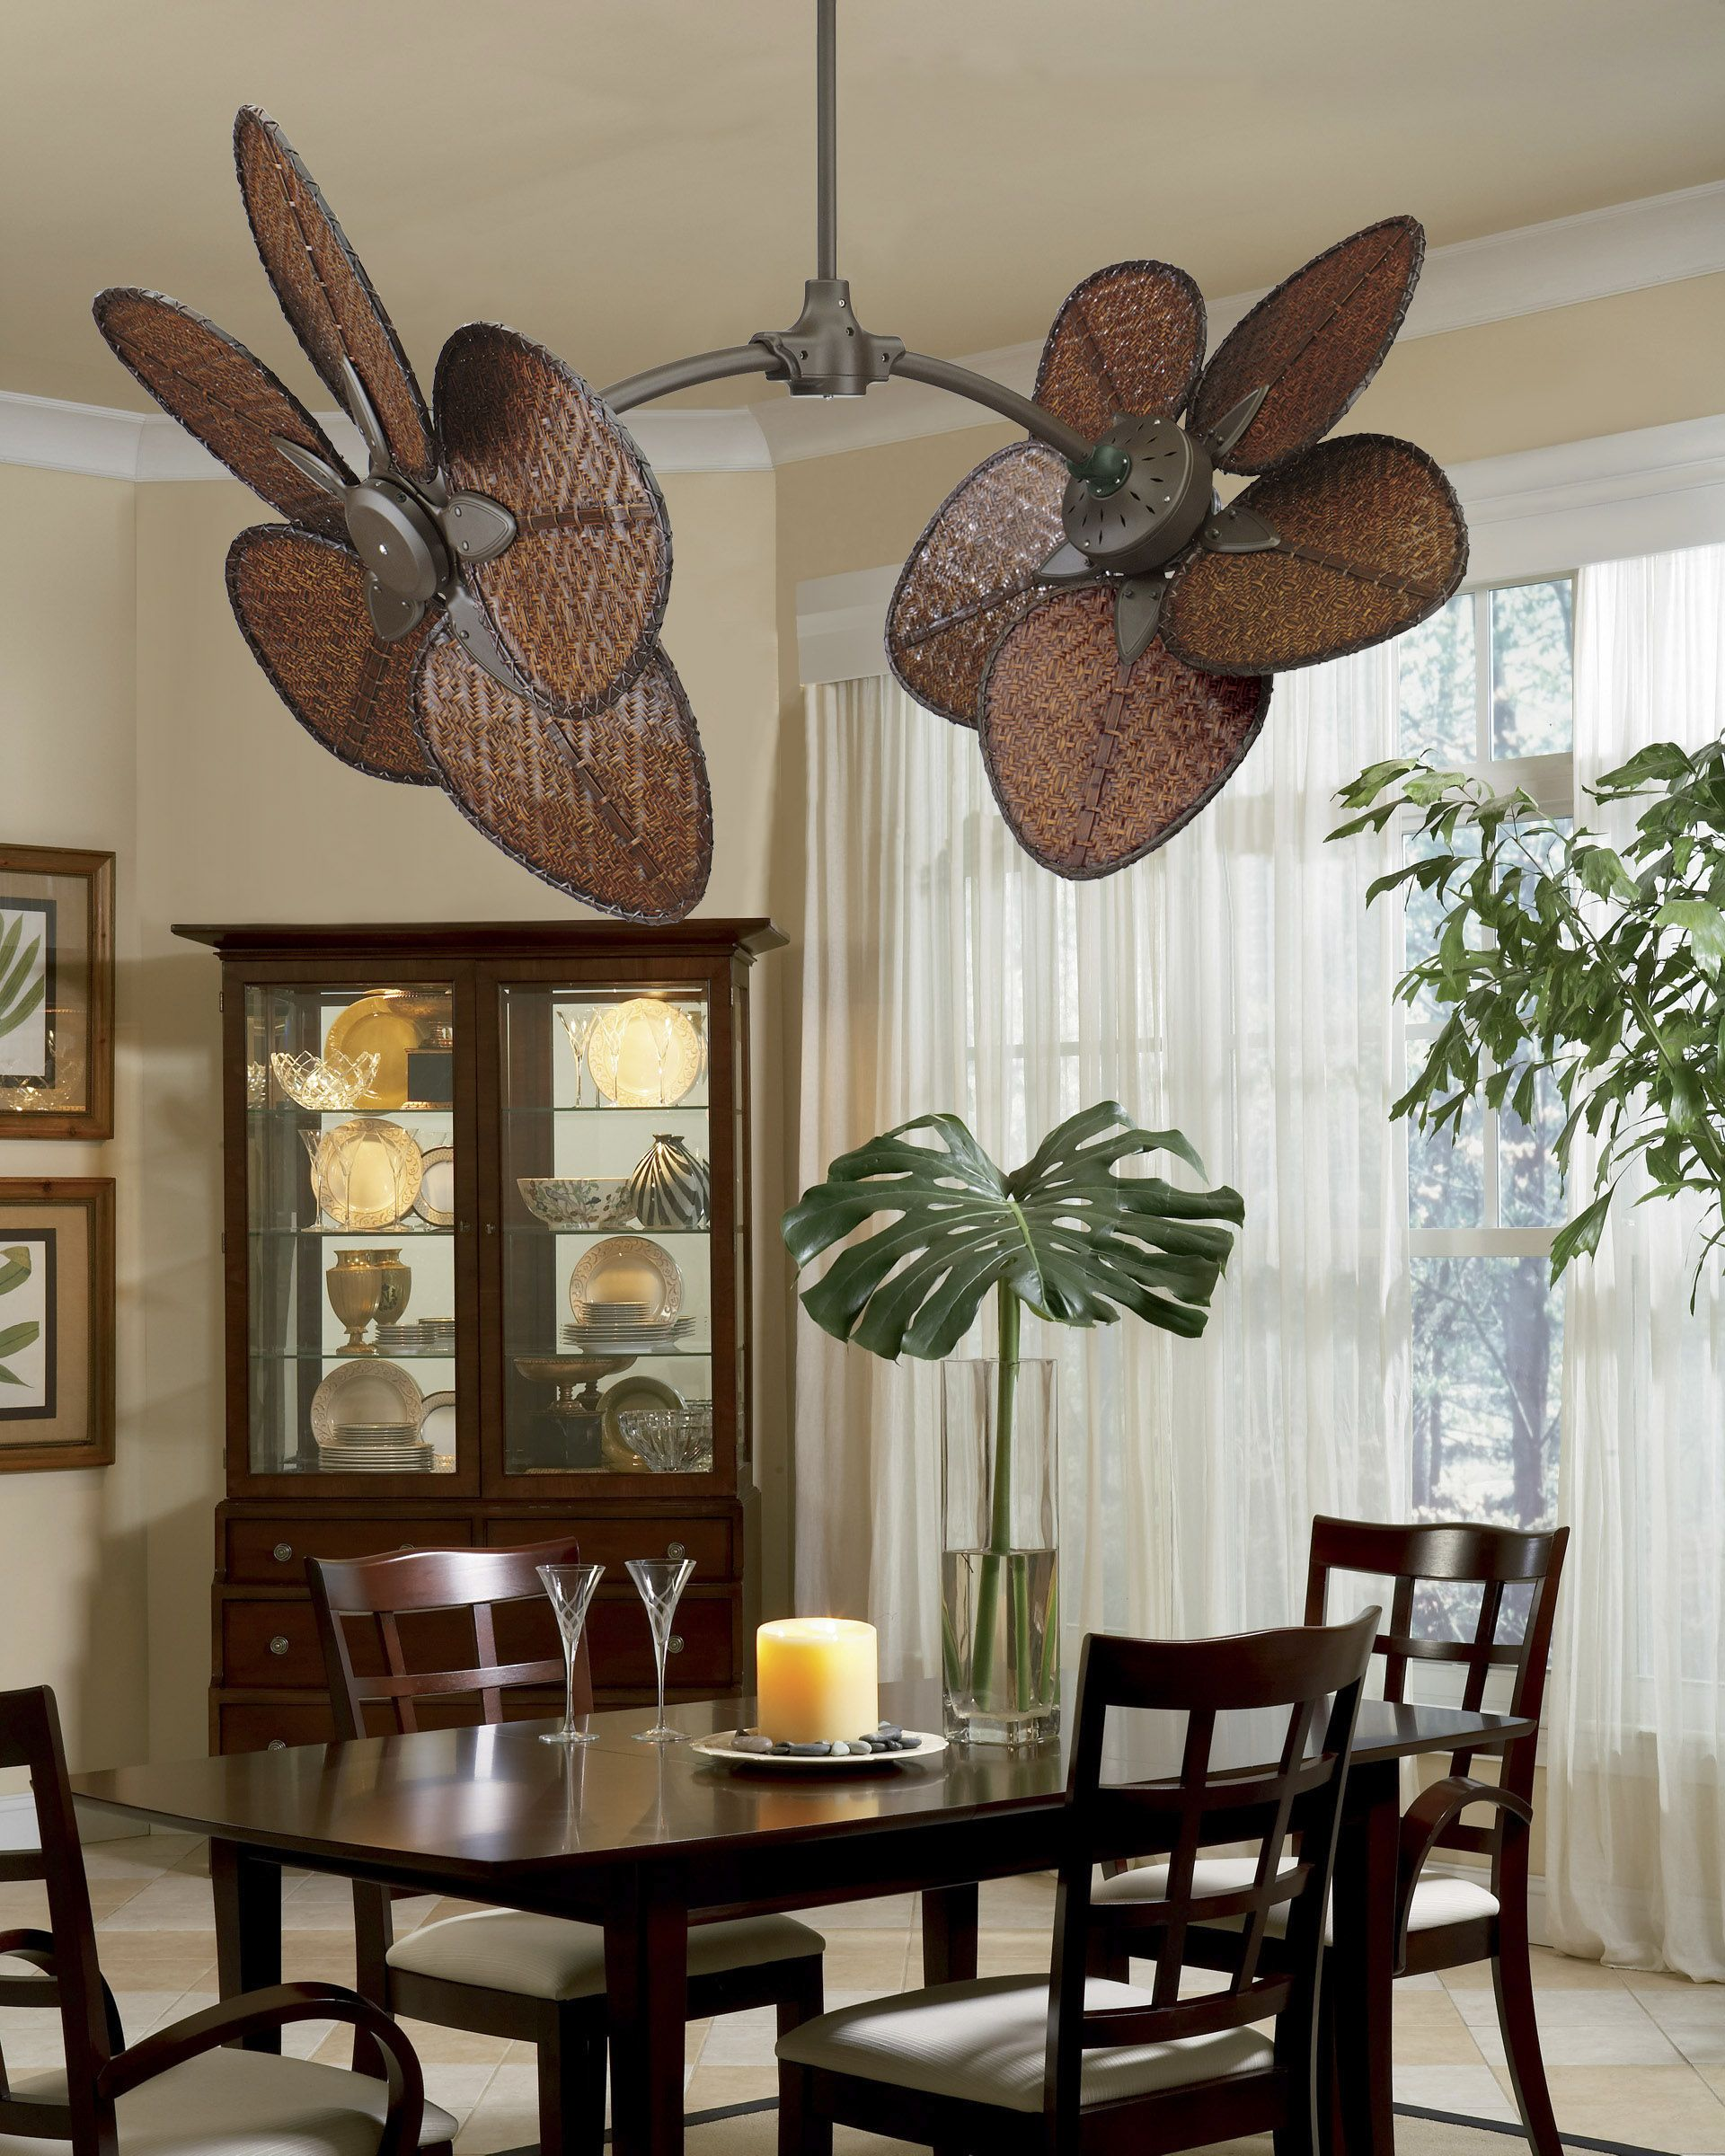 Cool Room Fans Feel The Breeze Cool Down Your Dinning Room With This